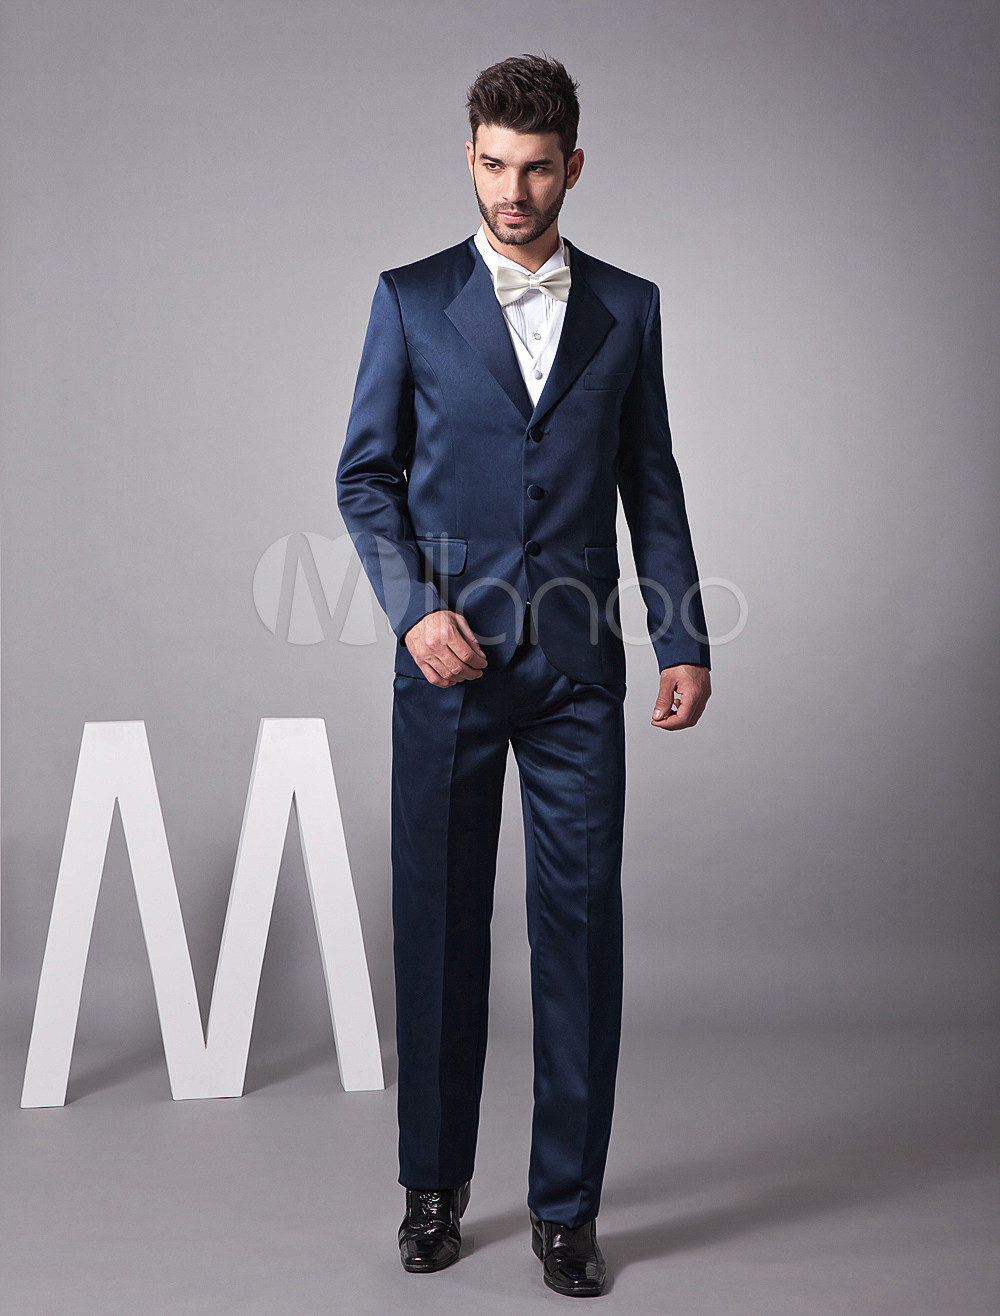 Looking for Navy Blue Suit Womens? Shop online at onelainsex.ml for the latest Navy Blue Suit Womens. Free shipping available!